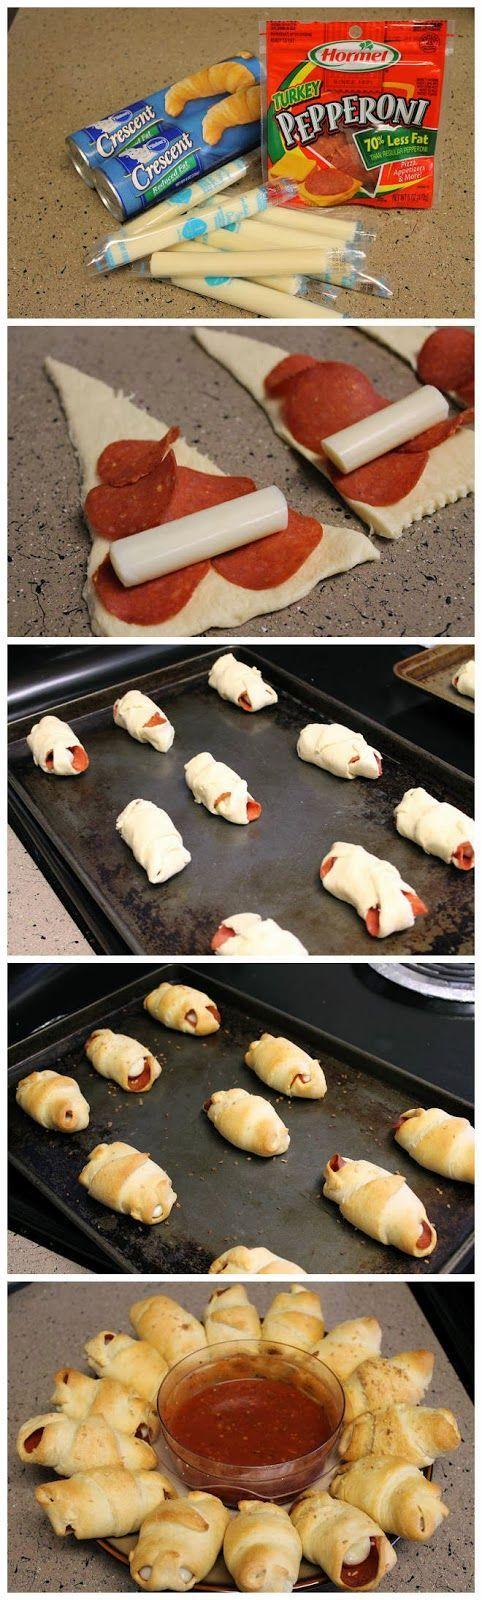 Crescent Pepperoni Roll-Ups using reduced fat crescents, turkey pepperoni and light string cheese.